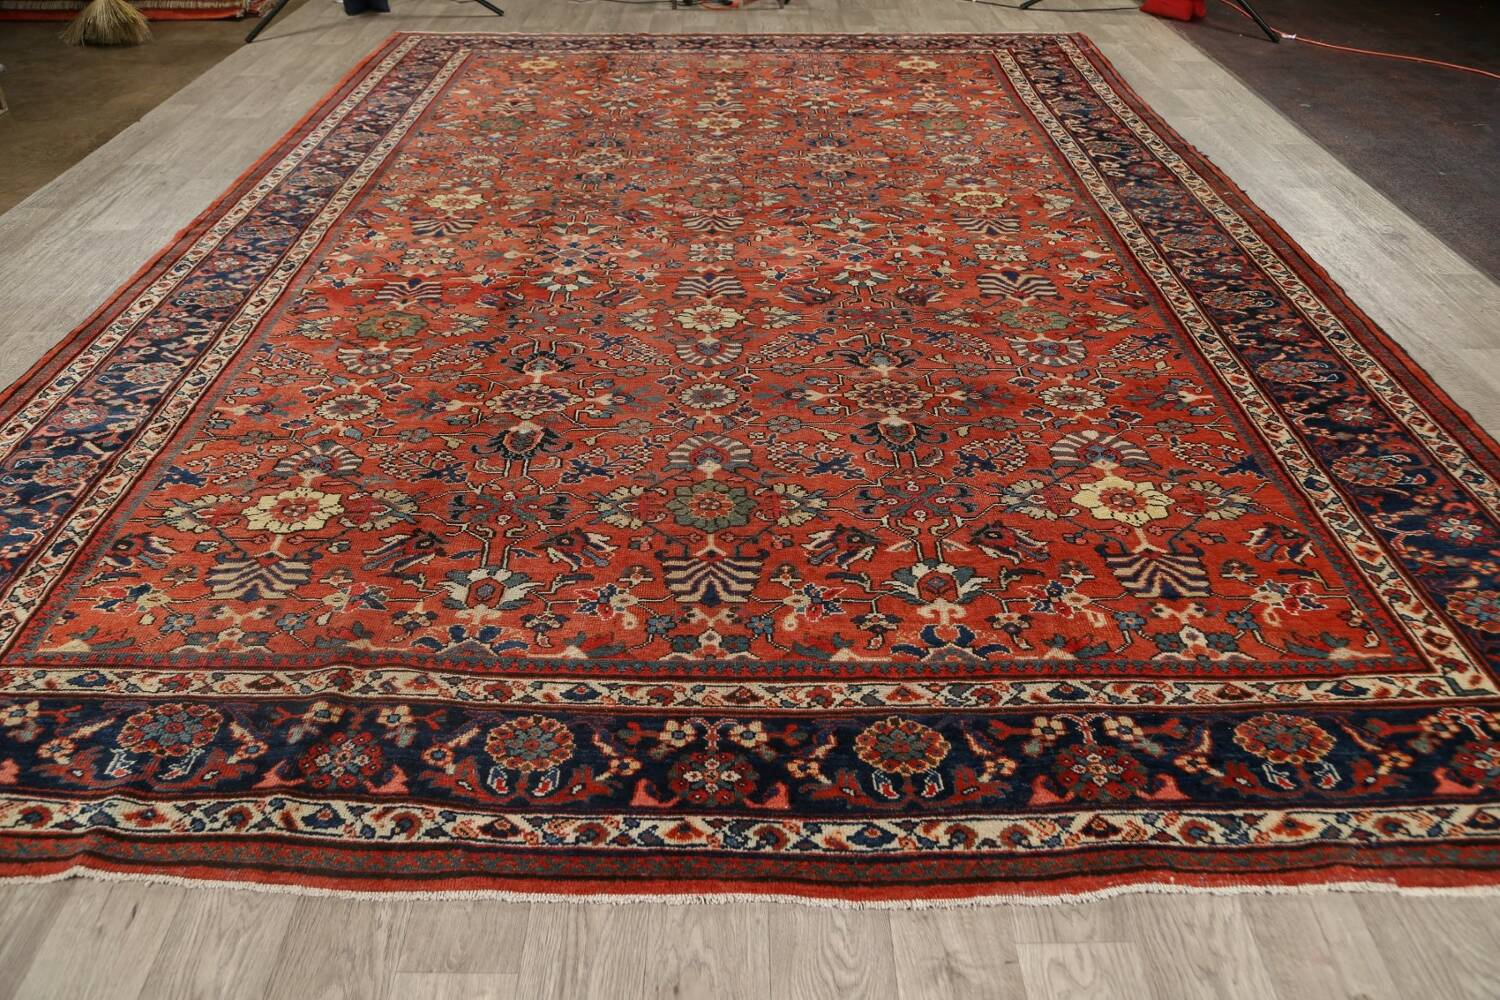 Pre-1900 Antique Vegetable Dye Sultanabad Persian Area Rug 10x14 image 17